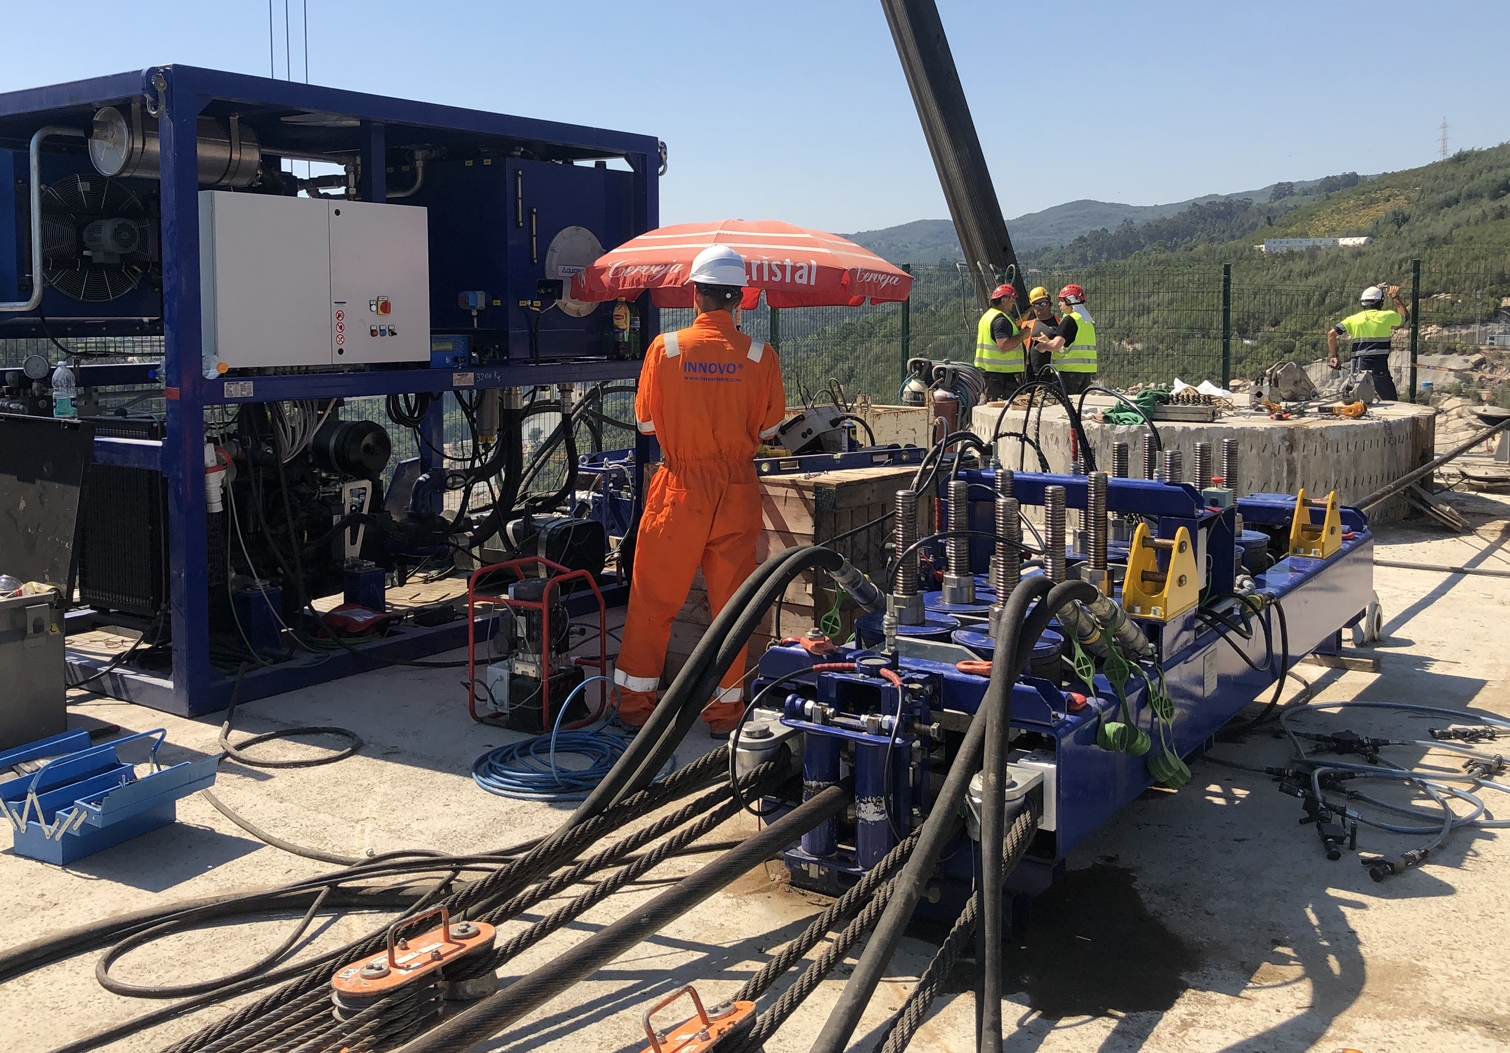 Custom-built linear winch and on-site support saves time and lowers costs for Leitner Ropeways